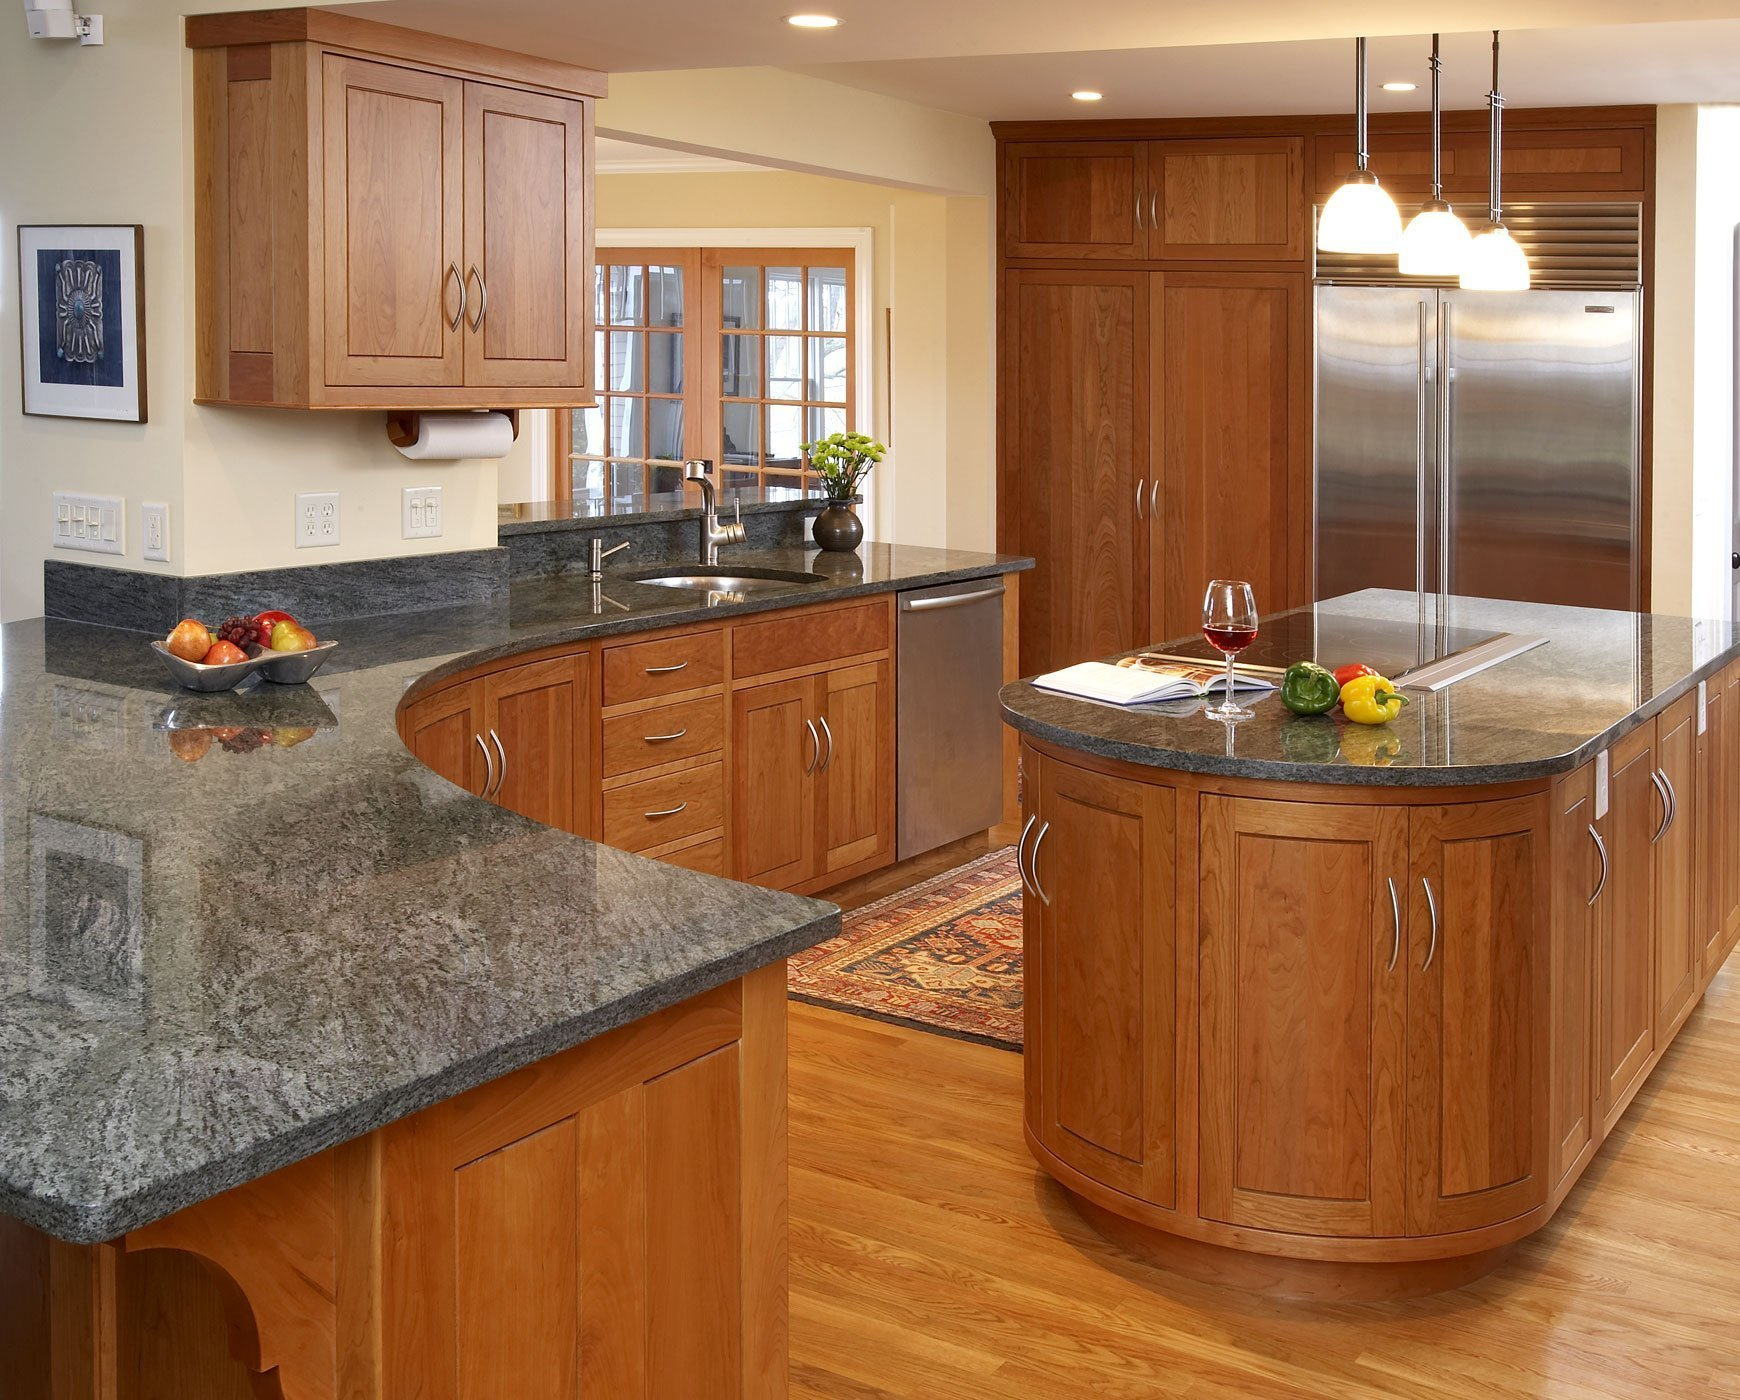 Kitchens With Cherry Cabinets And Tan Color Walls